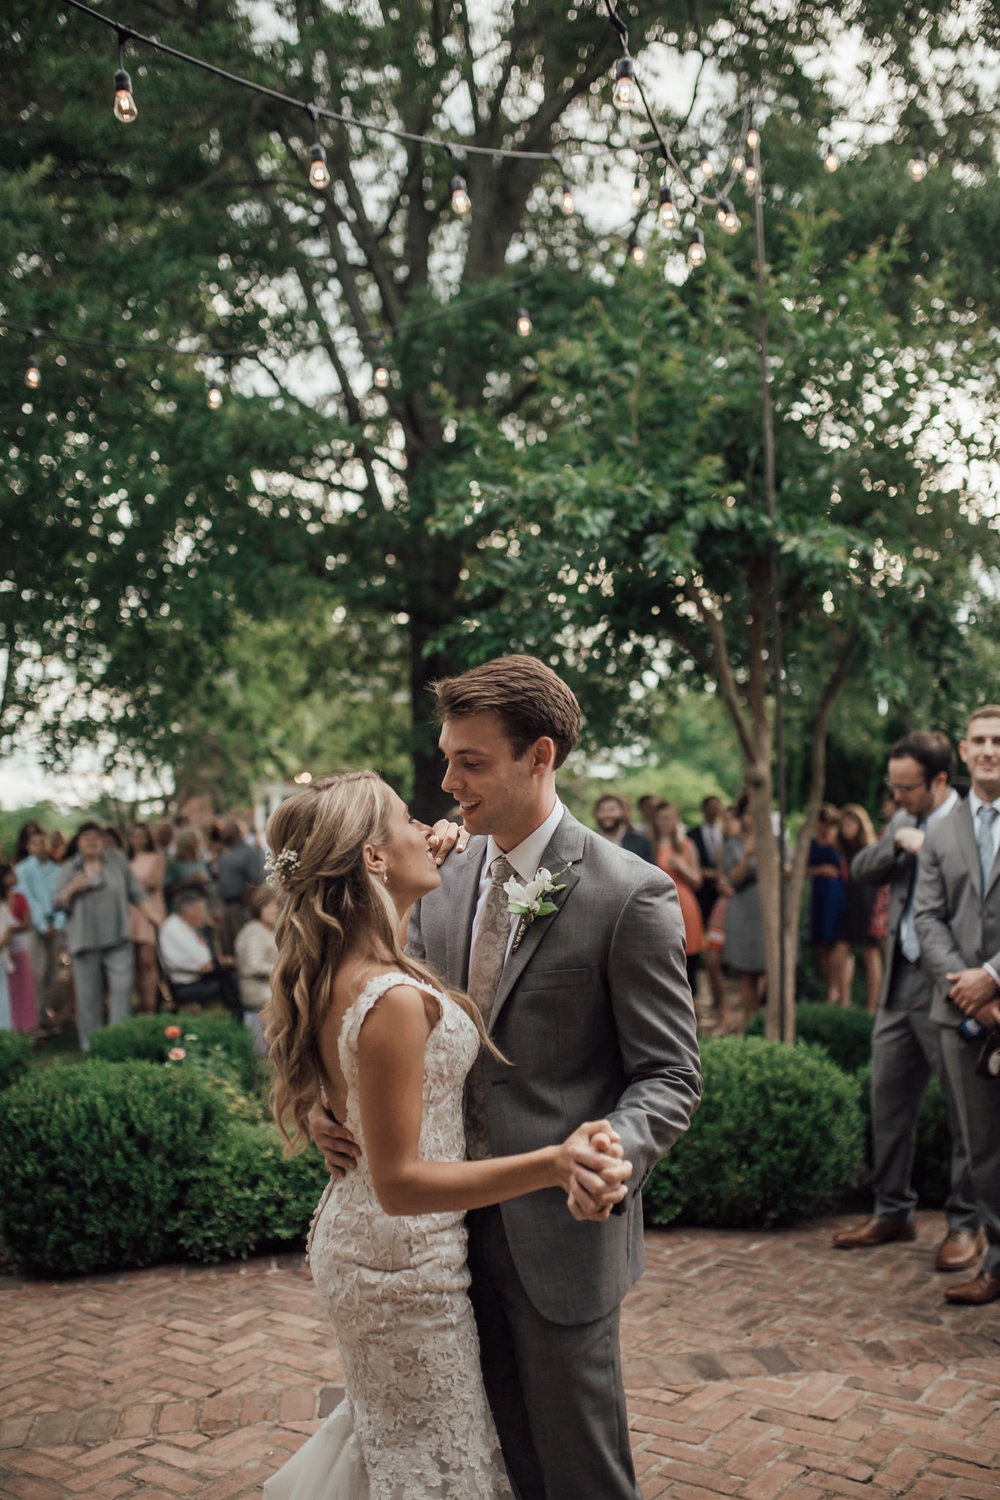 cassie-cook-photography-memphis-wedding-photographer-hedge-farm-wedding-venue-279.jpg